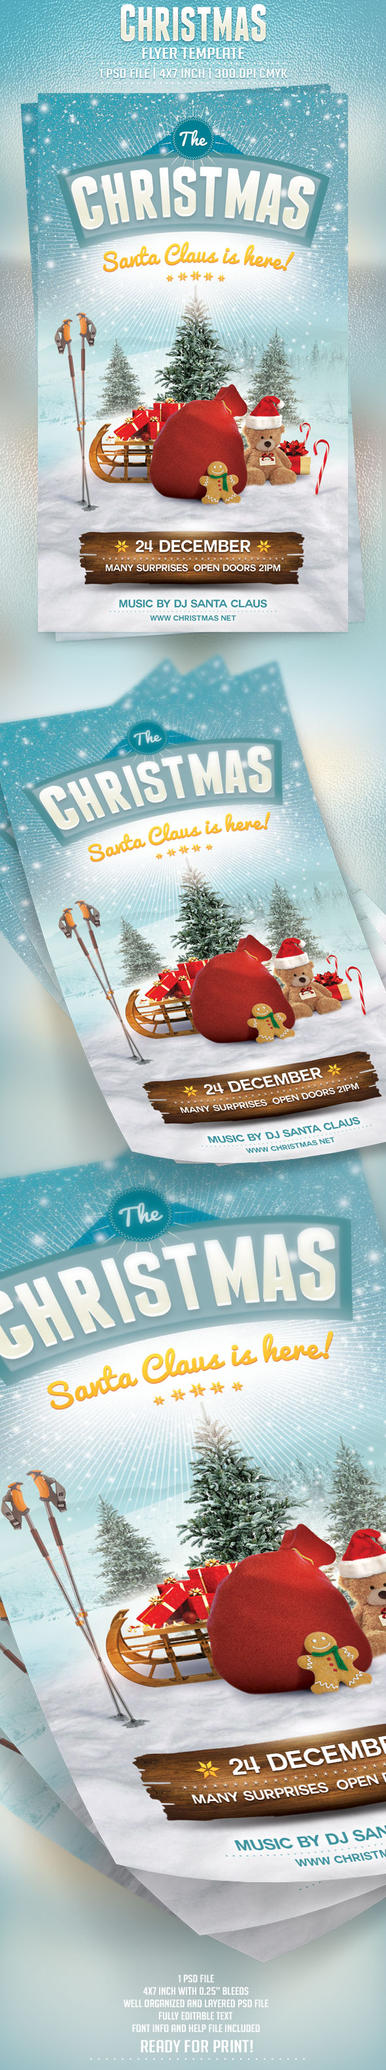 Christmas Flyer Template by BriellDesign